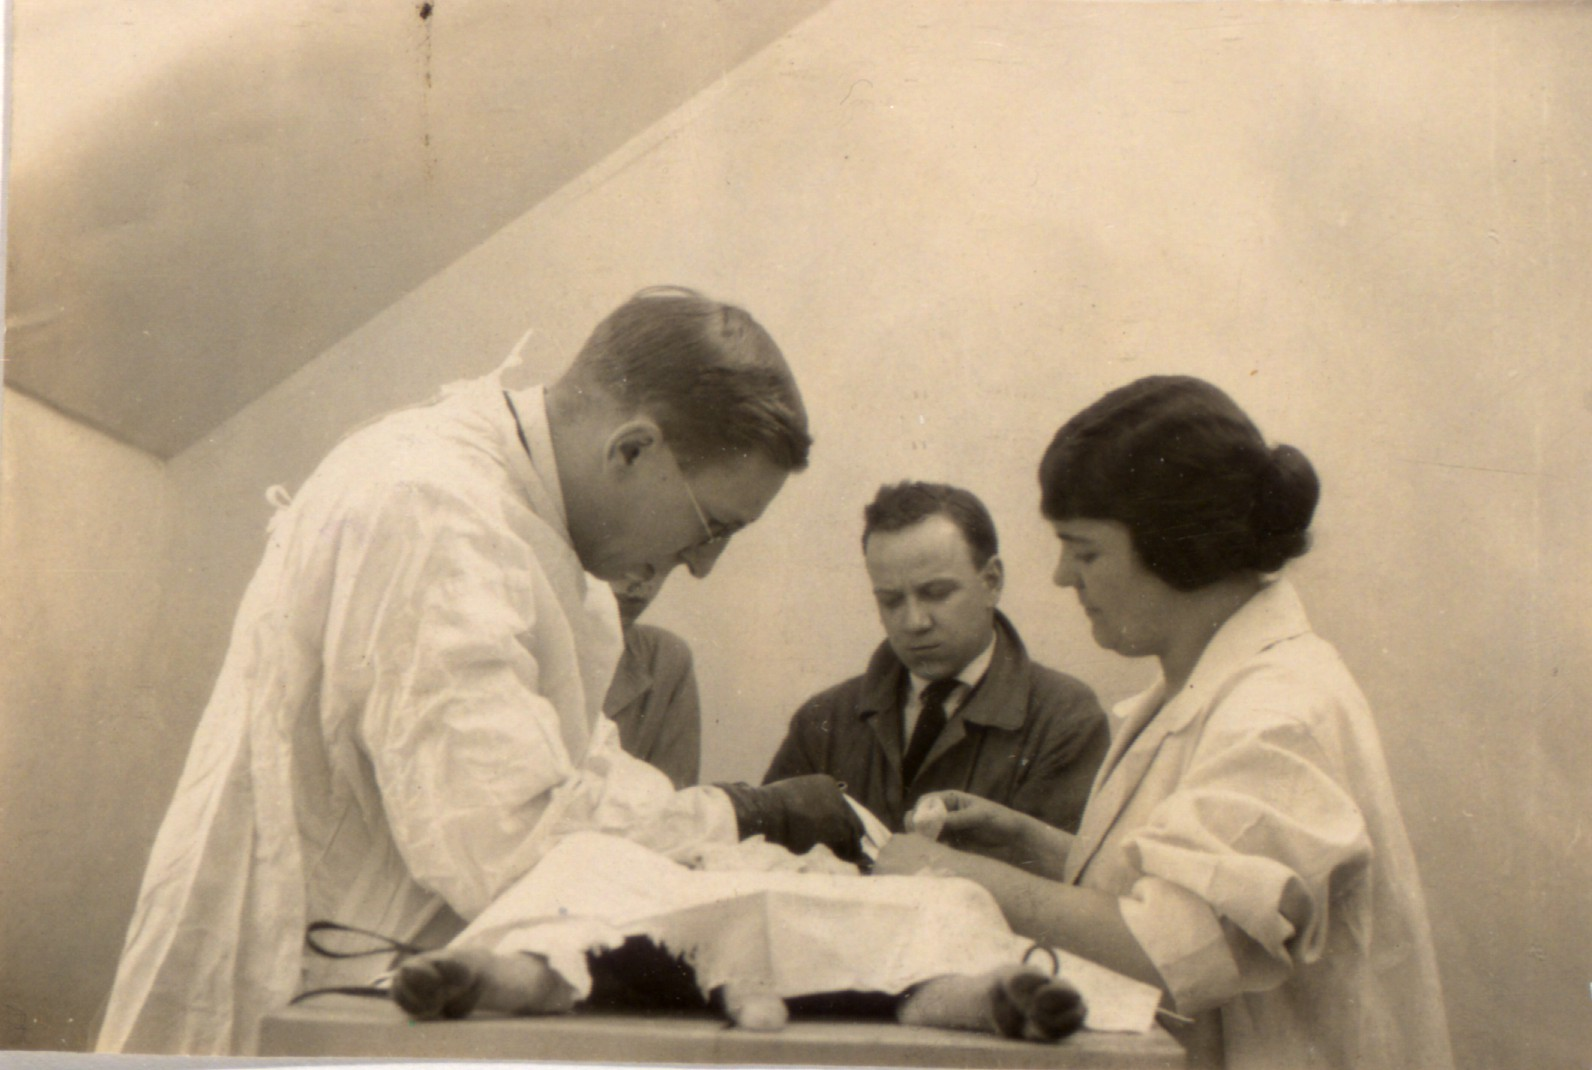 Original black and white photograph showing Banting, assisted by Sadie Gairns, performing surgery on a dog. Unidentified man in background.